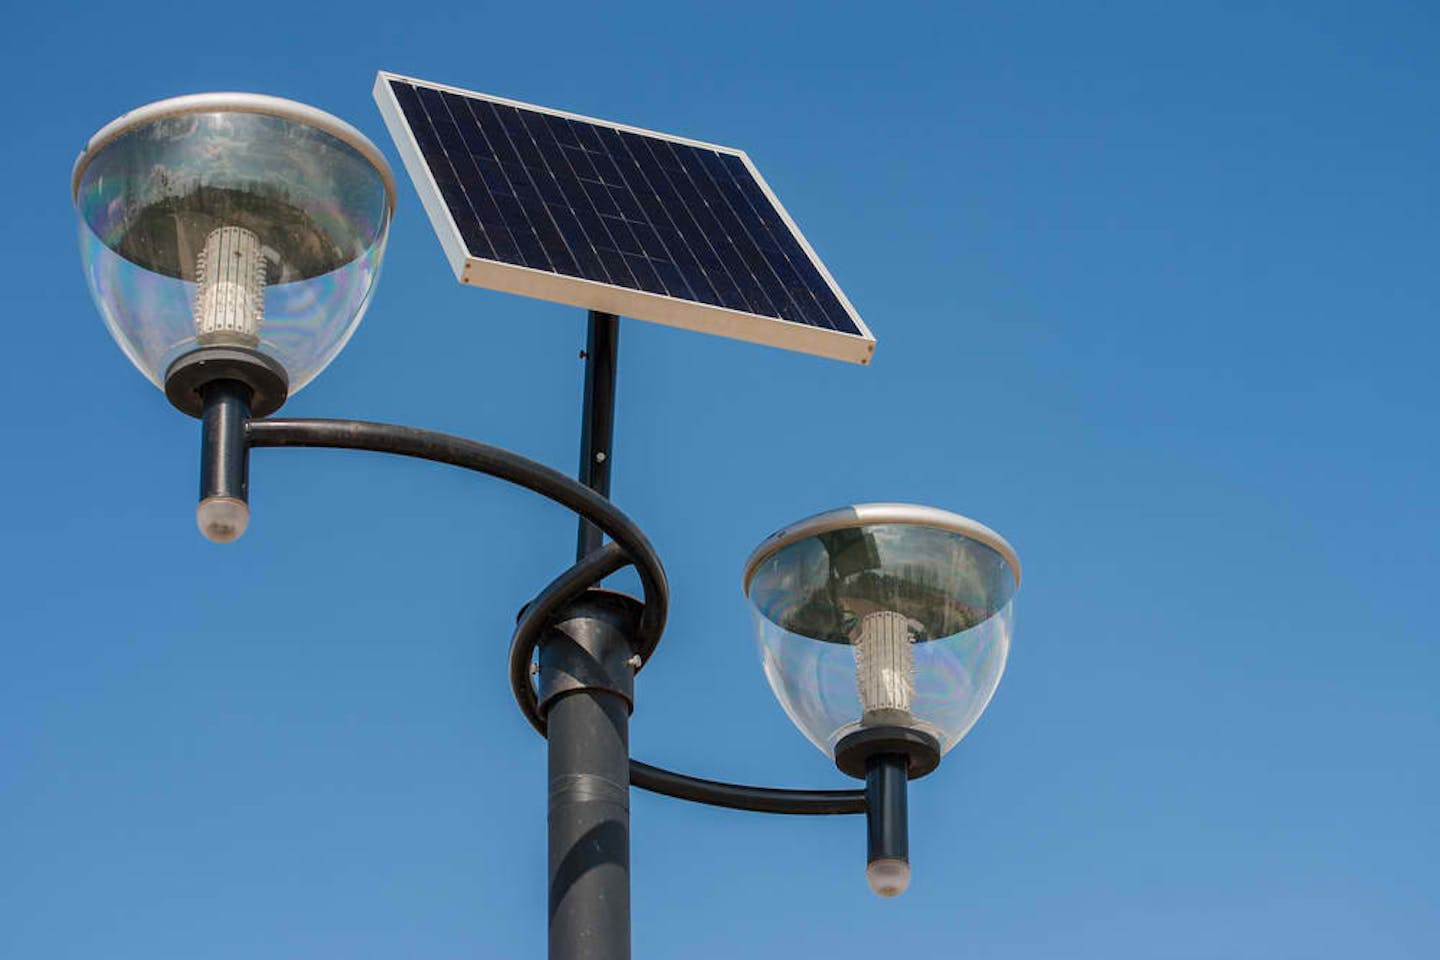 Efficient lighting with clean technology